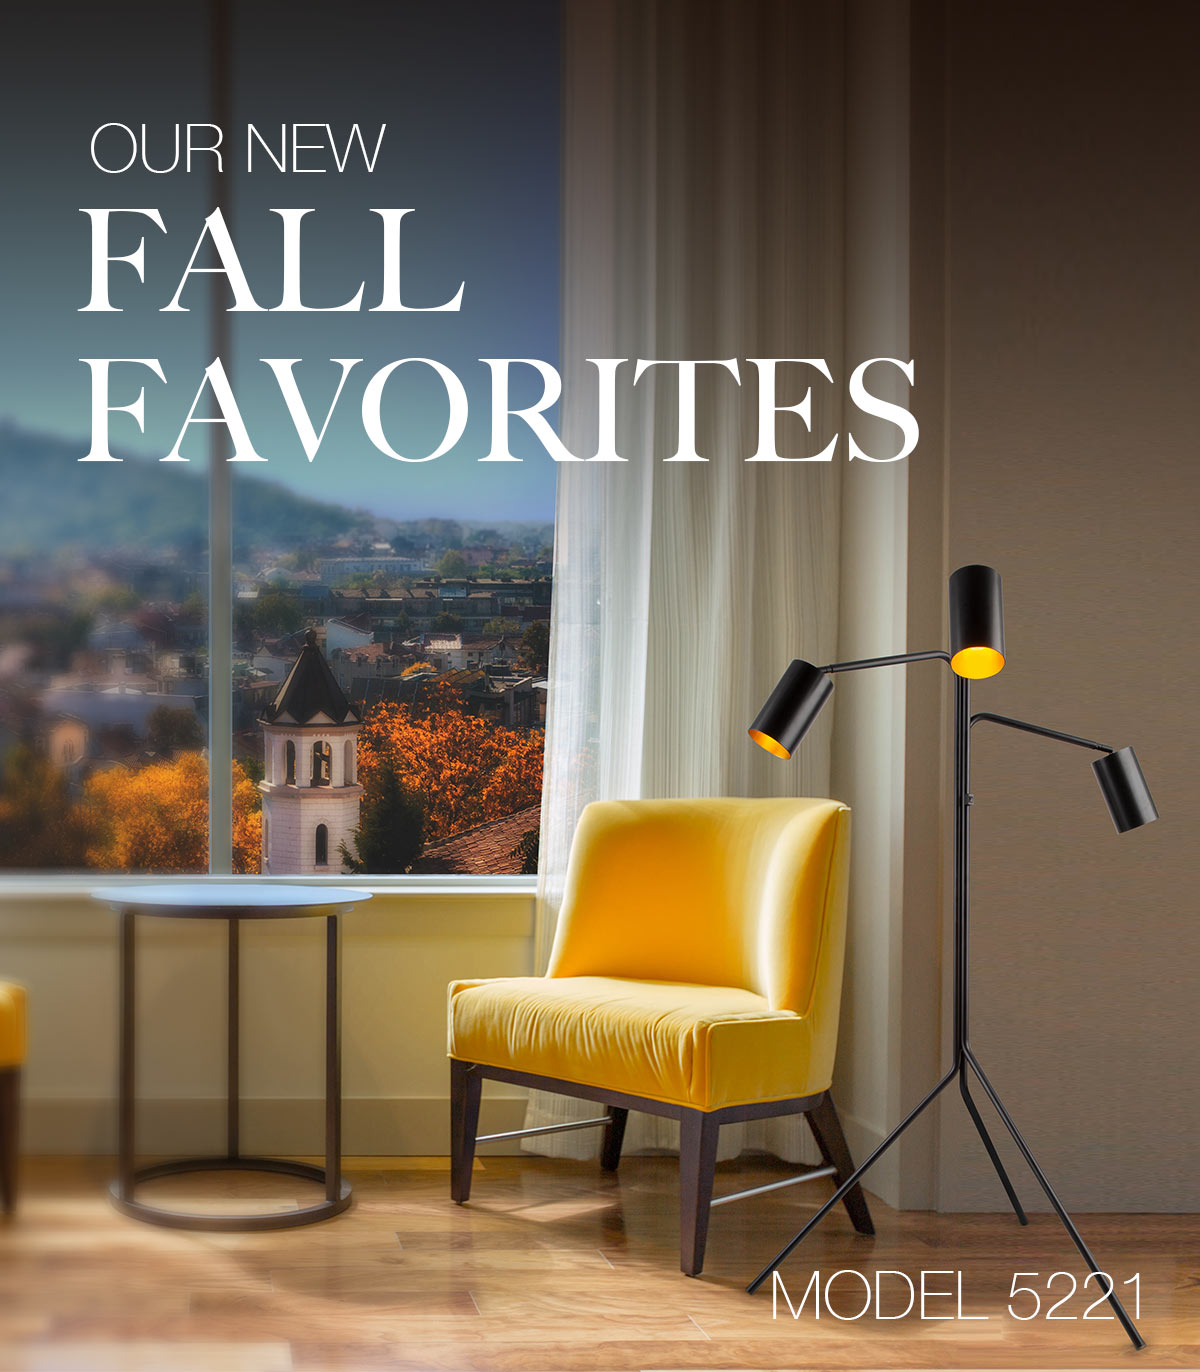 Our New Fall Favorites